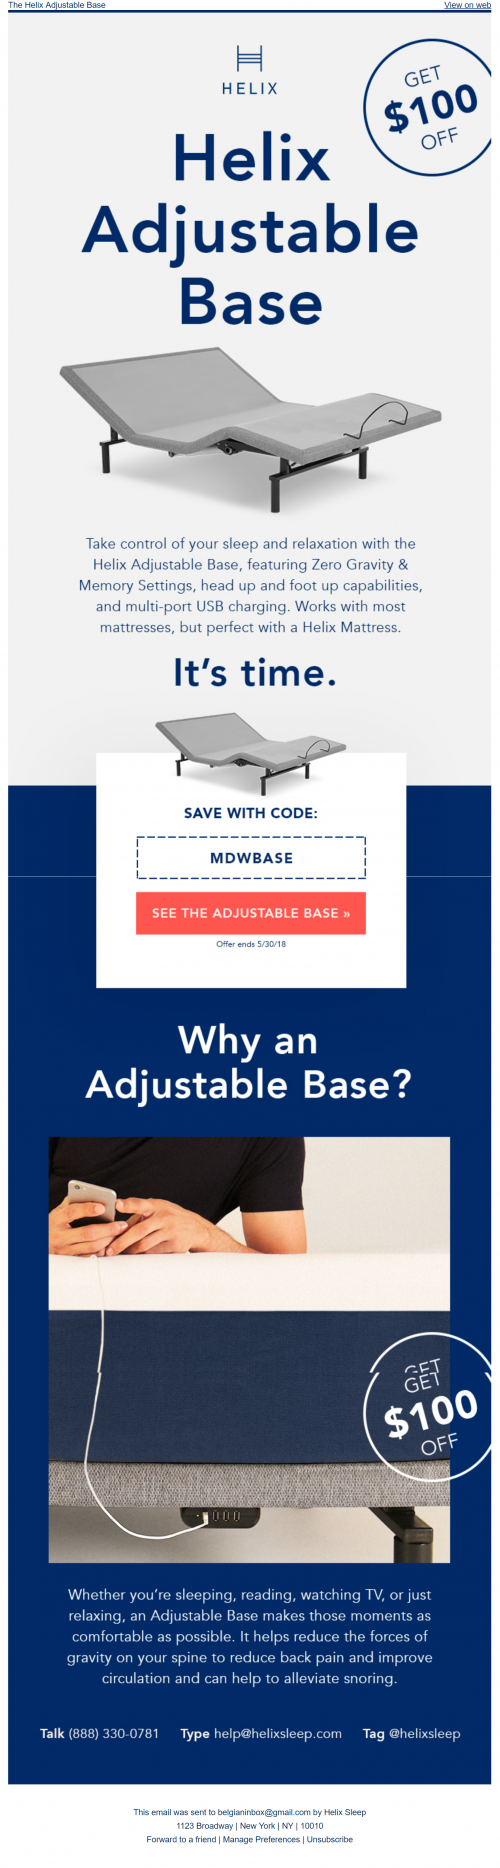 Product launch email - Adjustable base